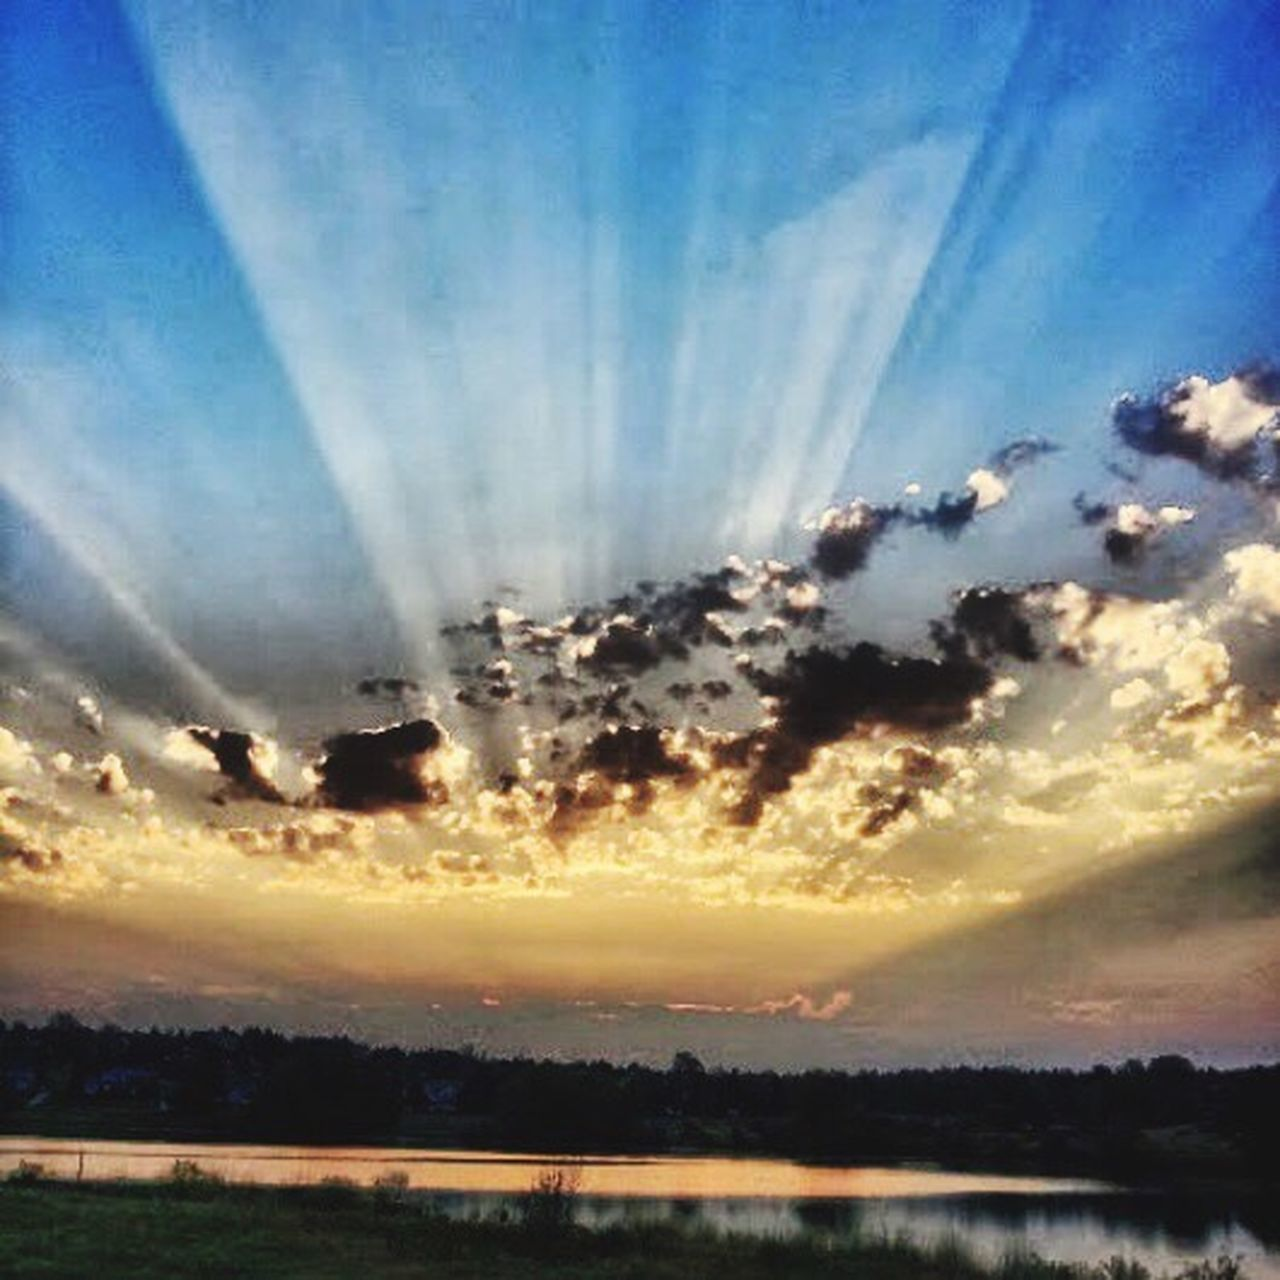 sunset, dramatic sky, cloud - sky, sky, scenics, sunbeam, nature, beauty in nature, silhouette, cloudscape, tranquil scene, atmospheric mood, bright, heaven, multi colored, backgrounds, outdoors, sunlight, no people, dusk, sun, awe, tranquility, sky only, landscape, saturated color, horizon over water, water, day